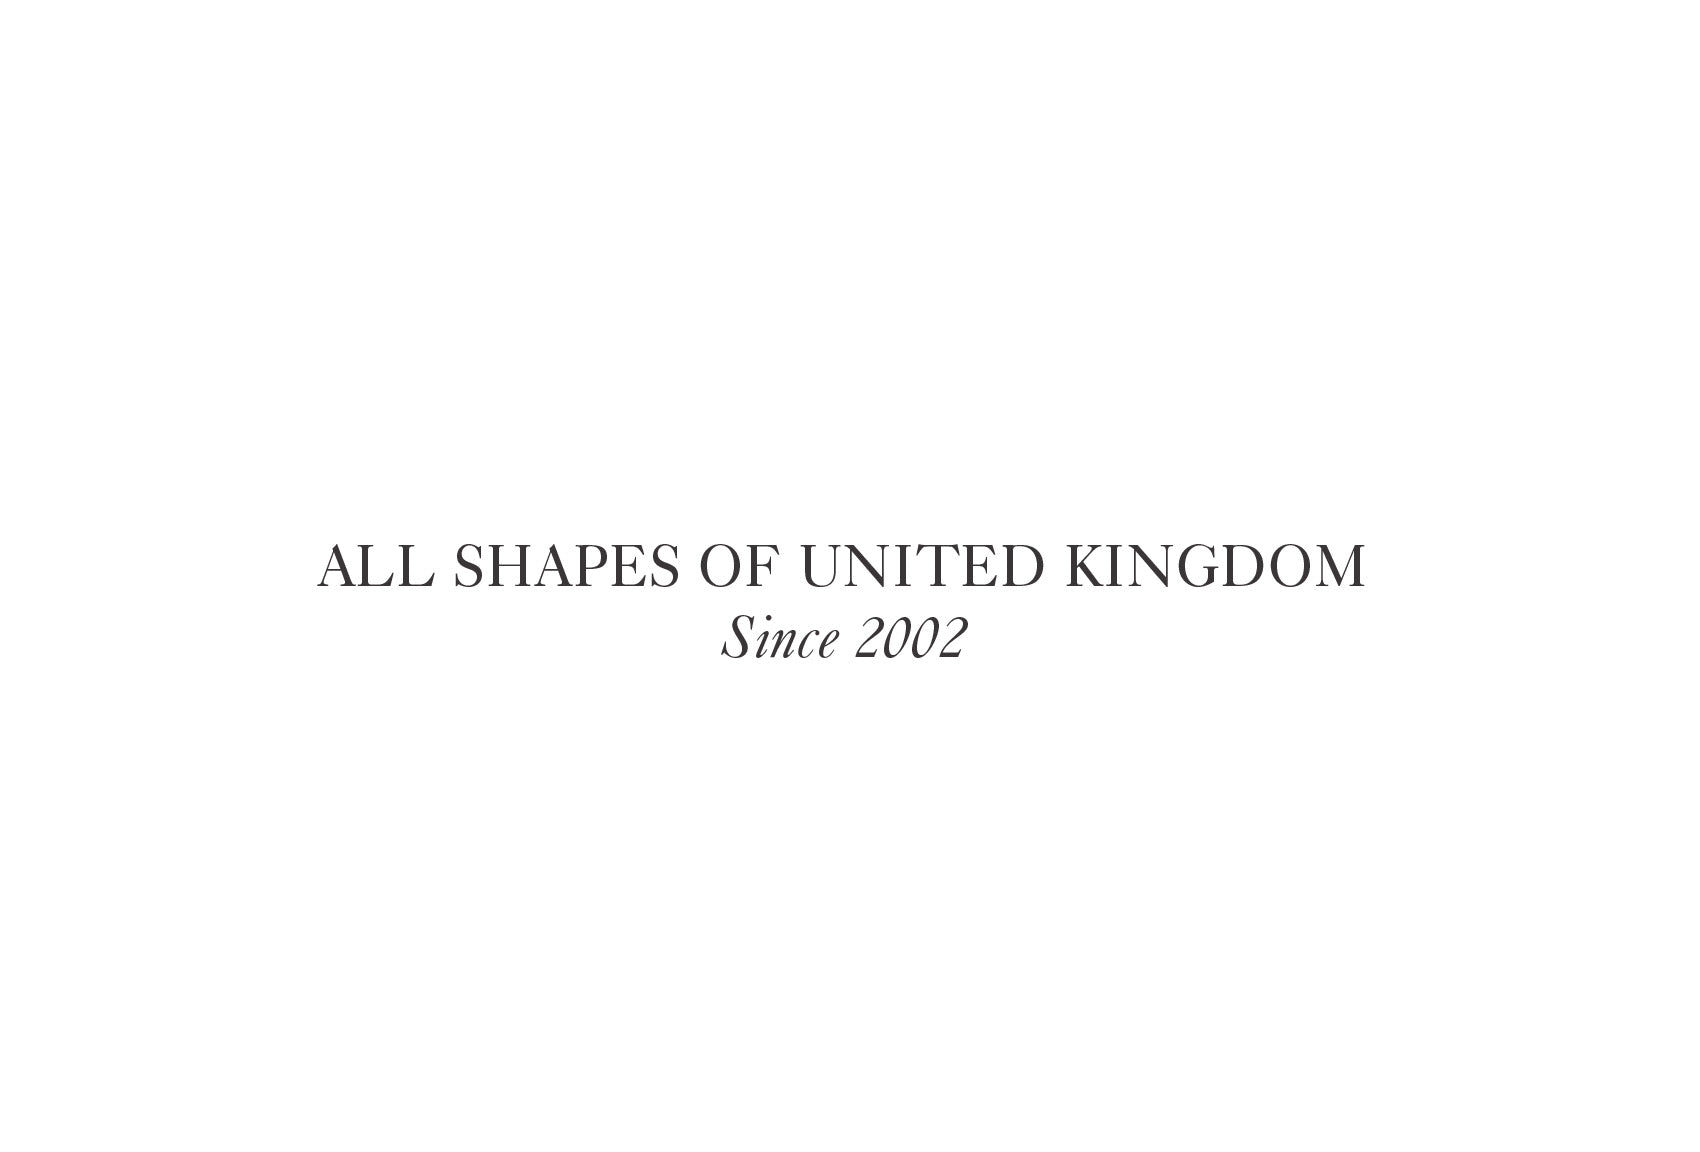 BURO: All shapes of United Kingdom